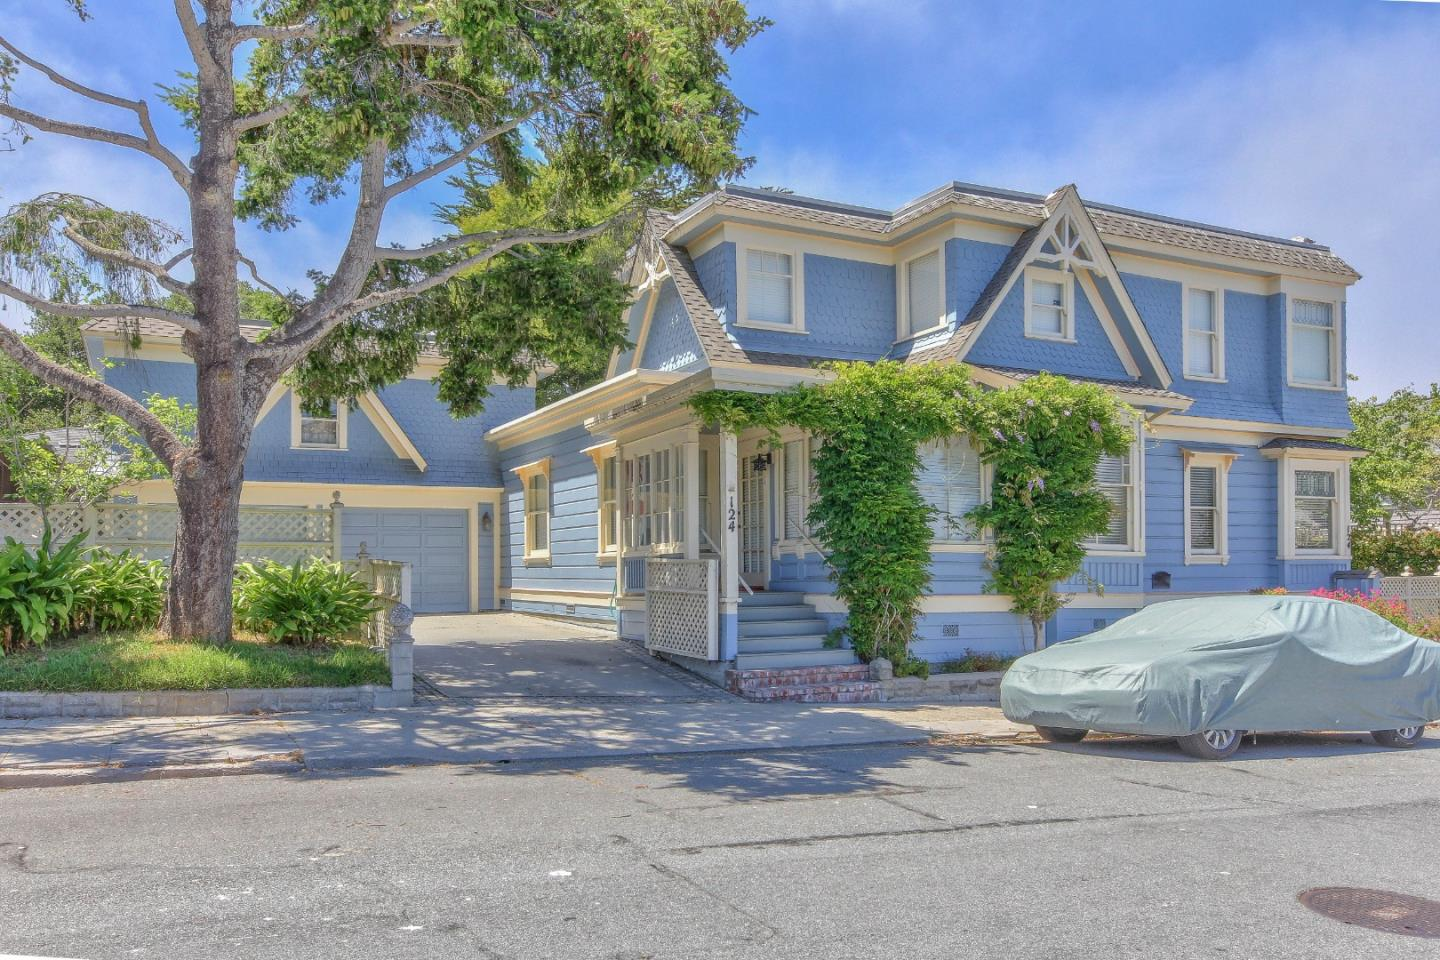 Photo of 122 Fountain AVE, PACIFIC GROVE, CA 93950